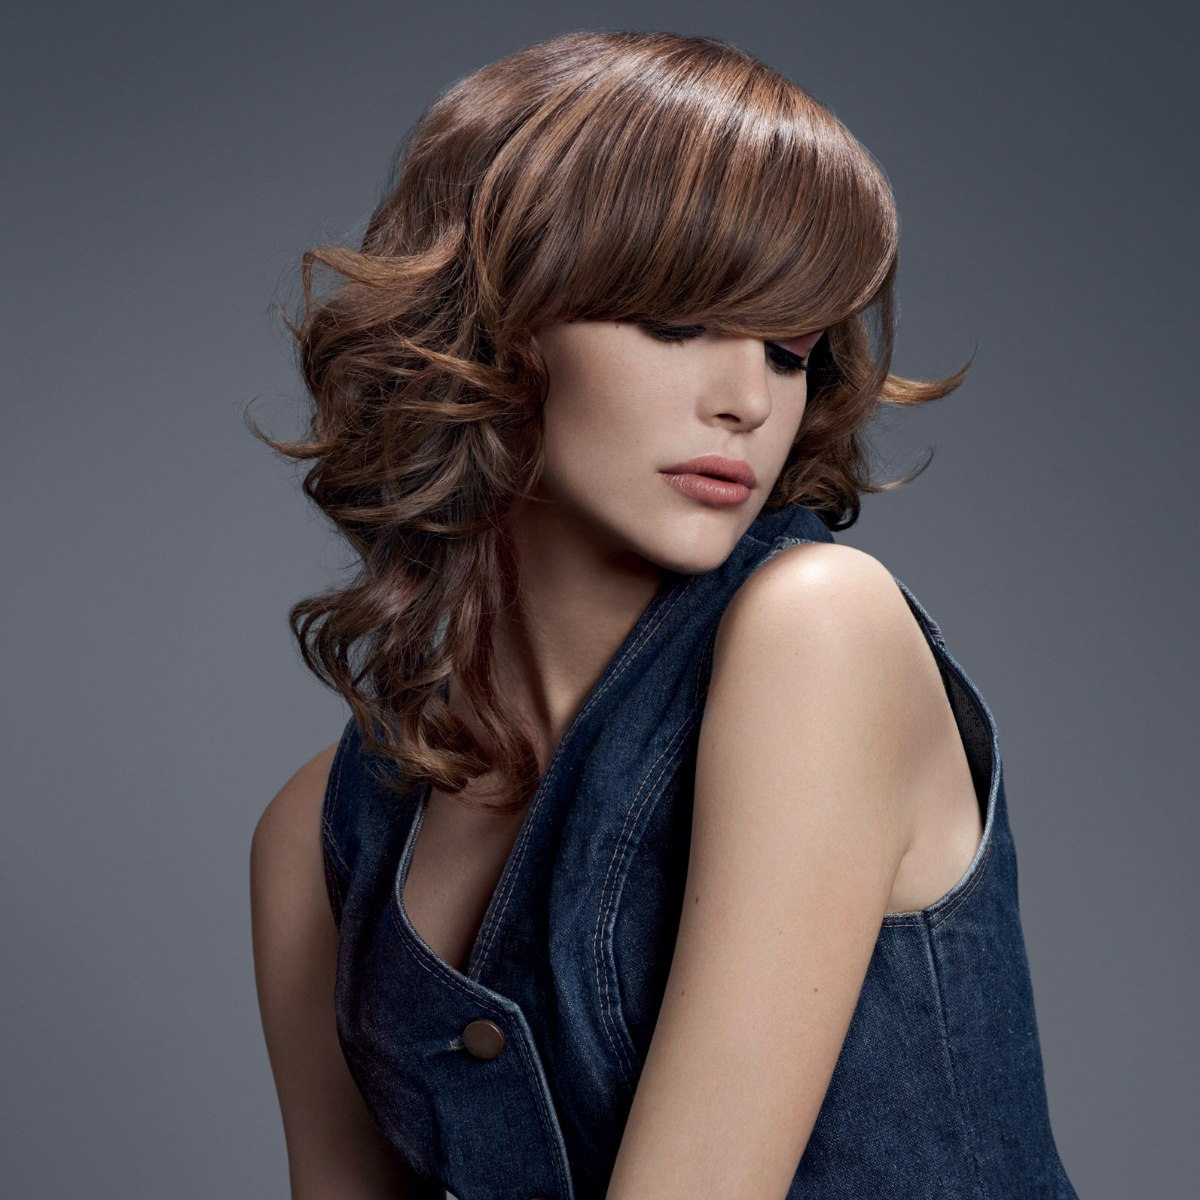 Long Hair With Sleek Bangs And Curls Tone In Tone Highlights